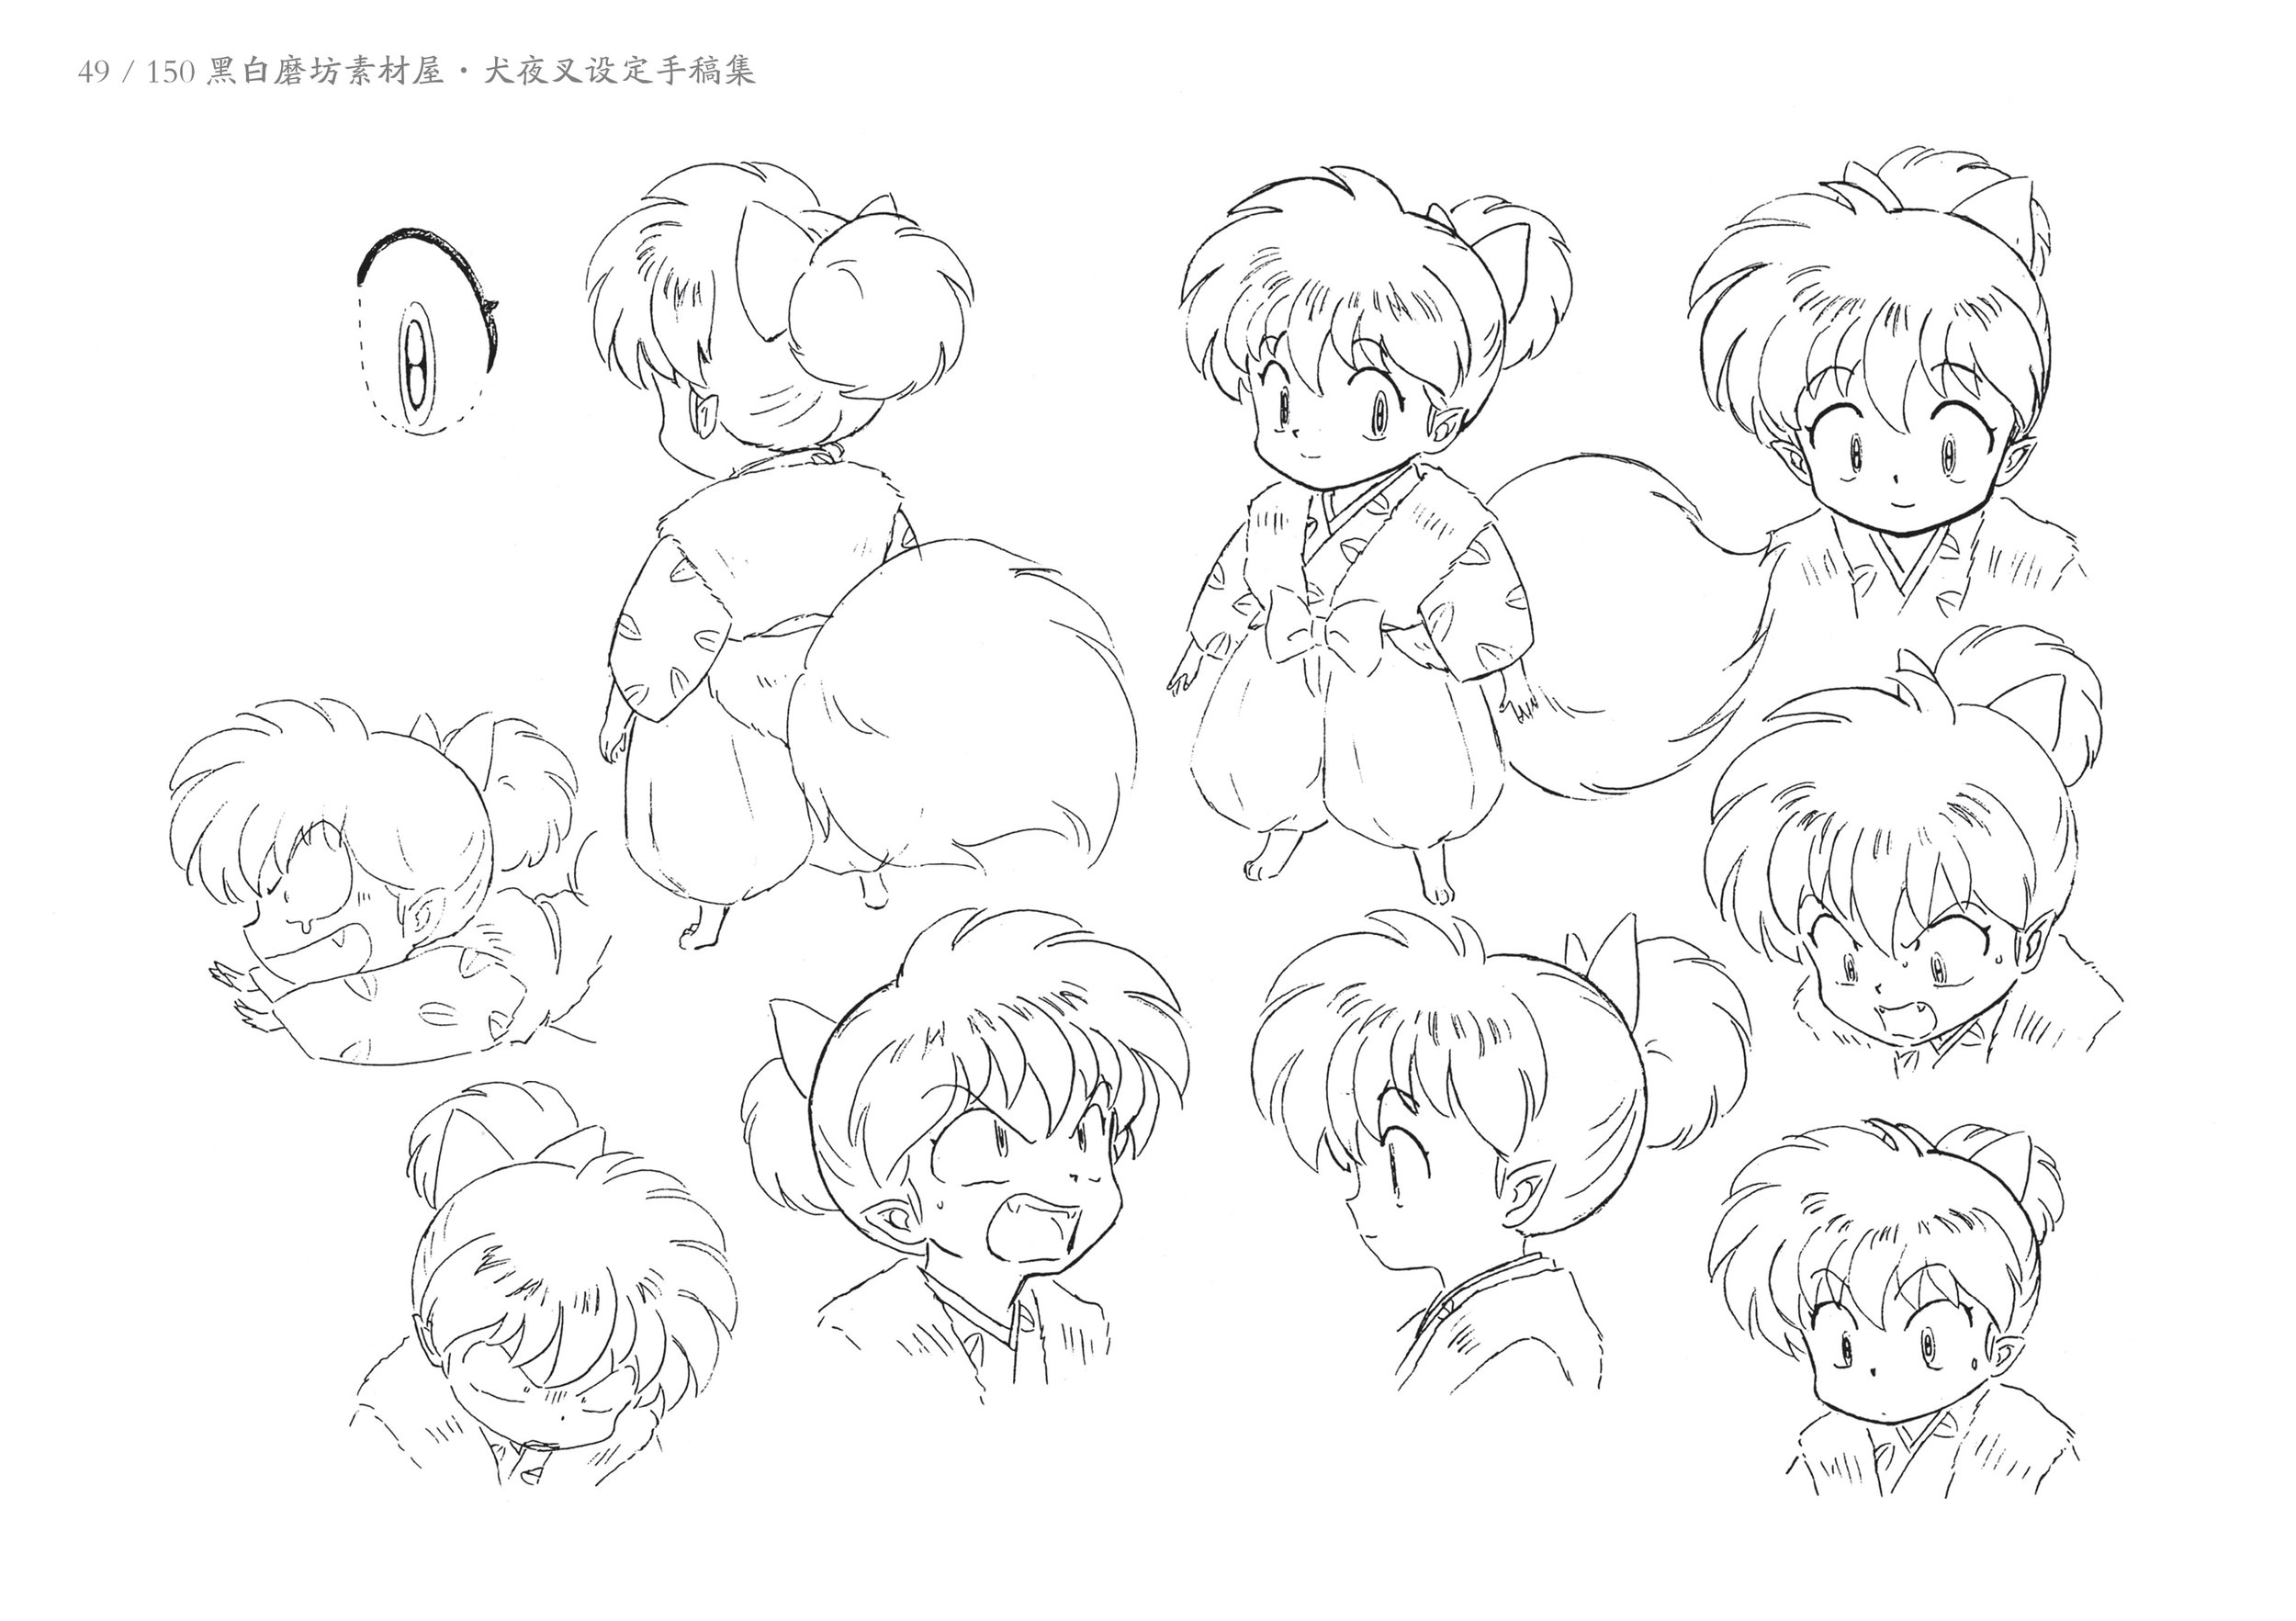 Art of the Inuyasha A - 43.jpg